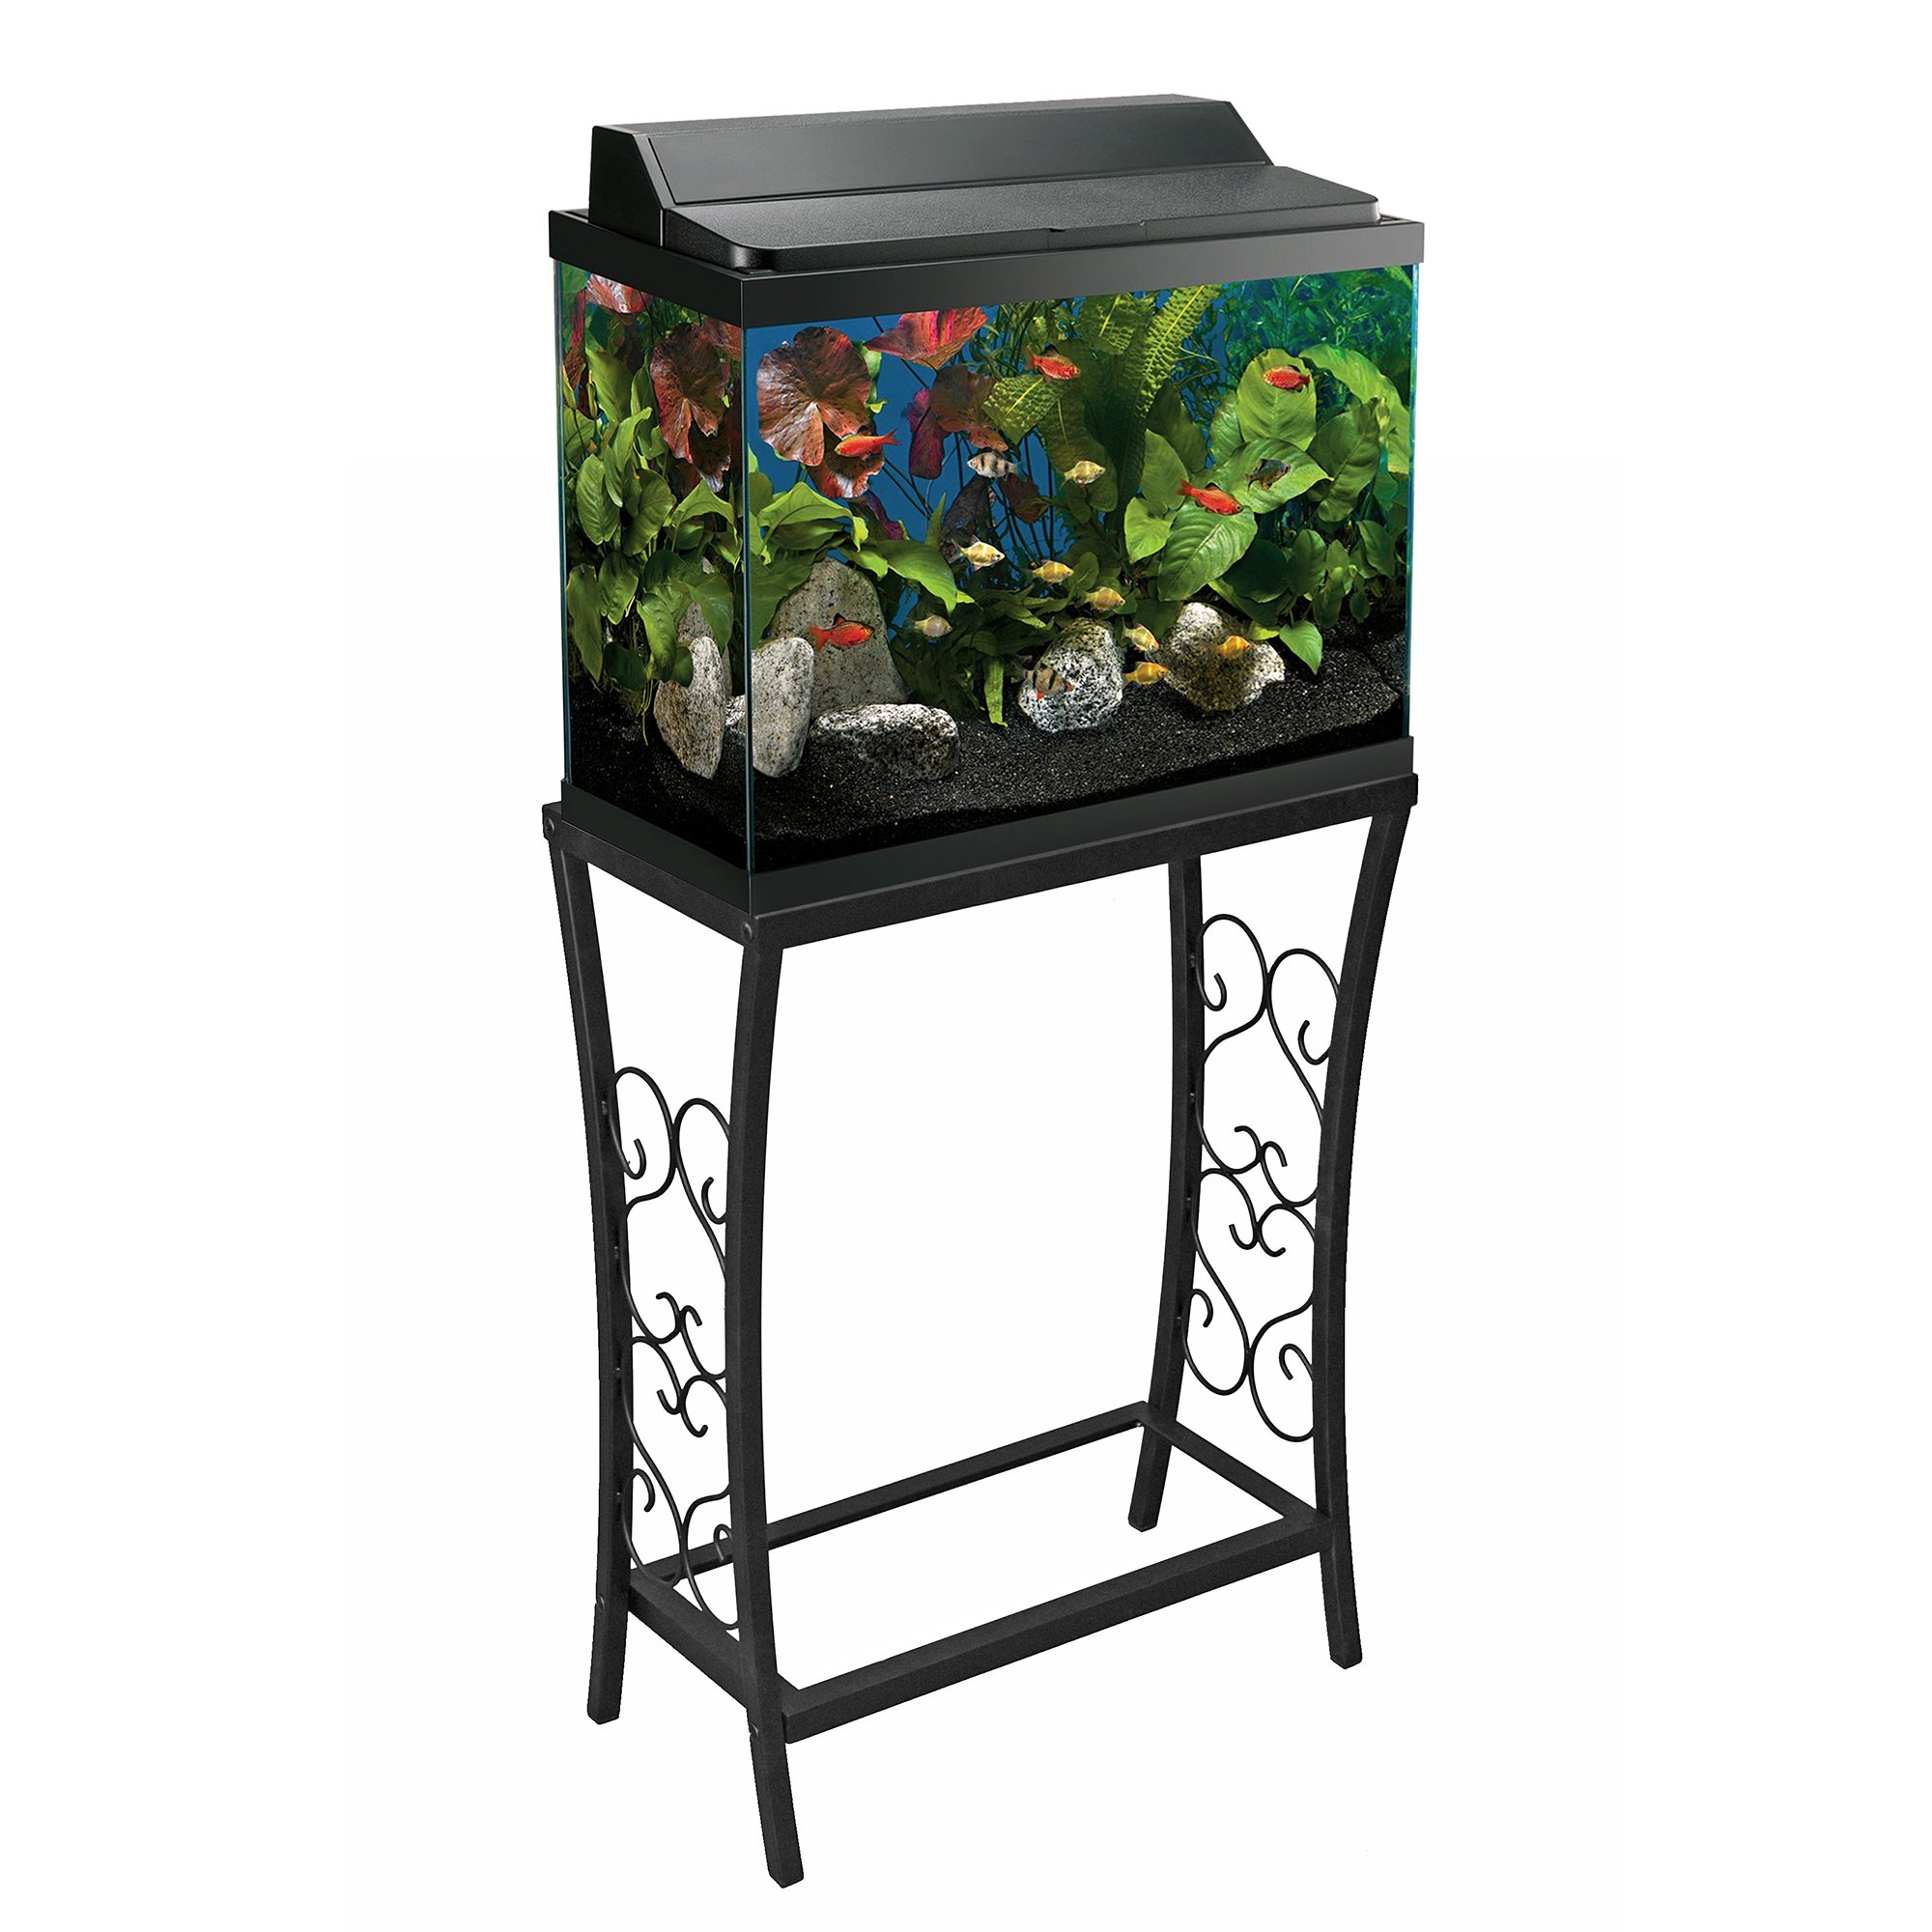 Fish tank with stand - Fish Tank With Stand